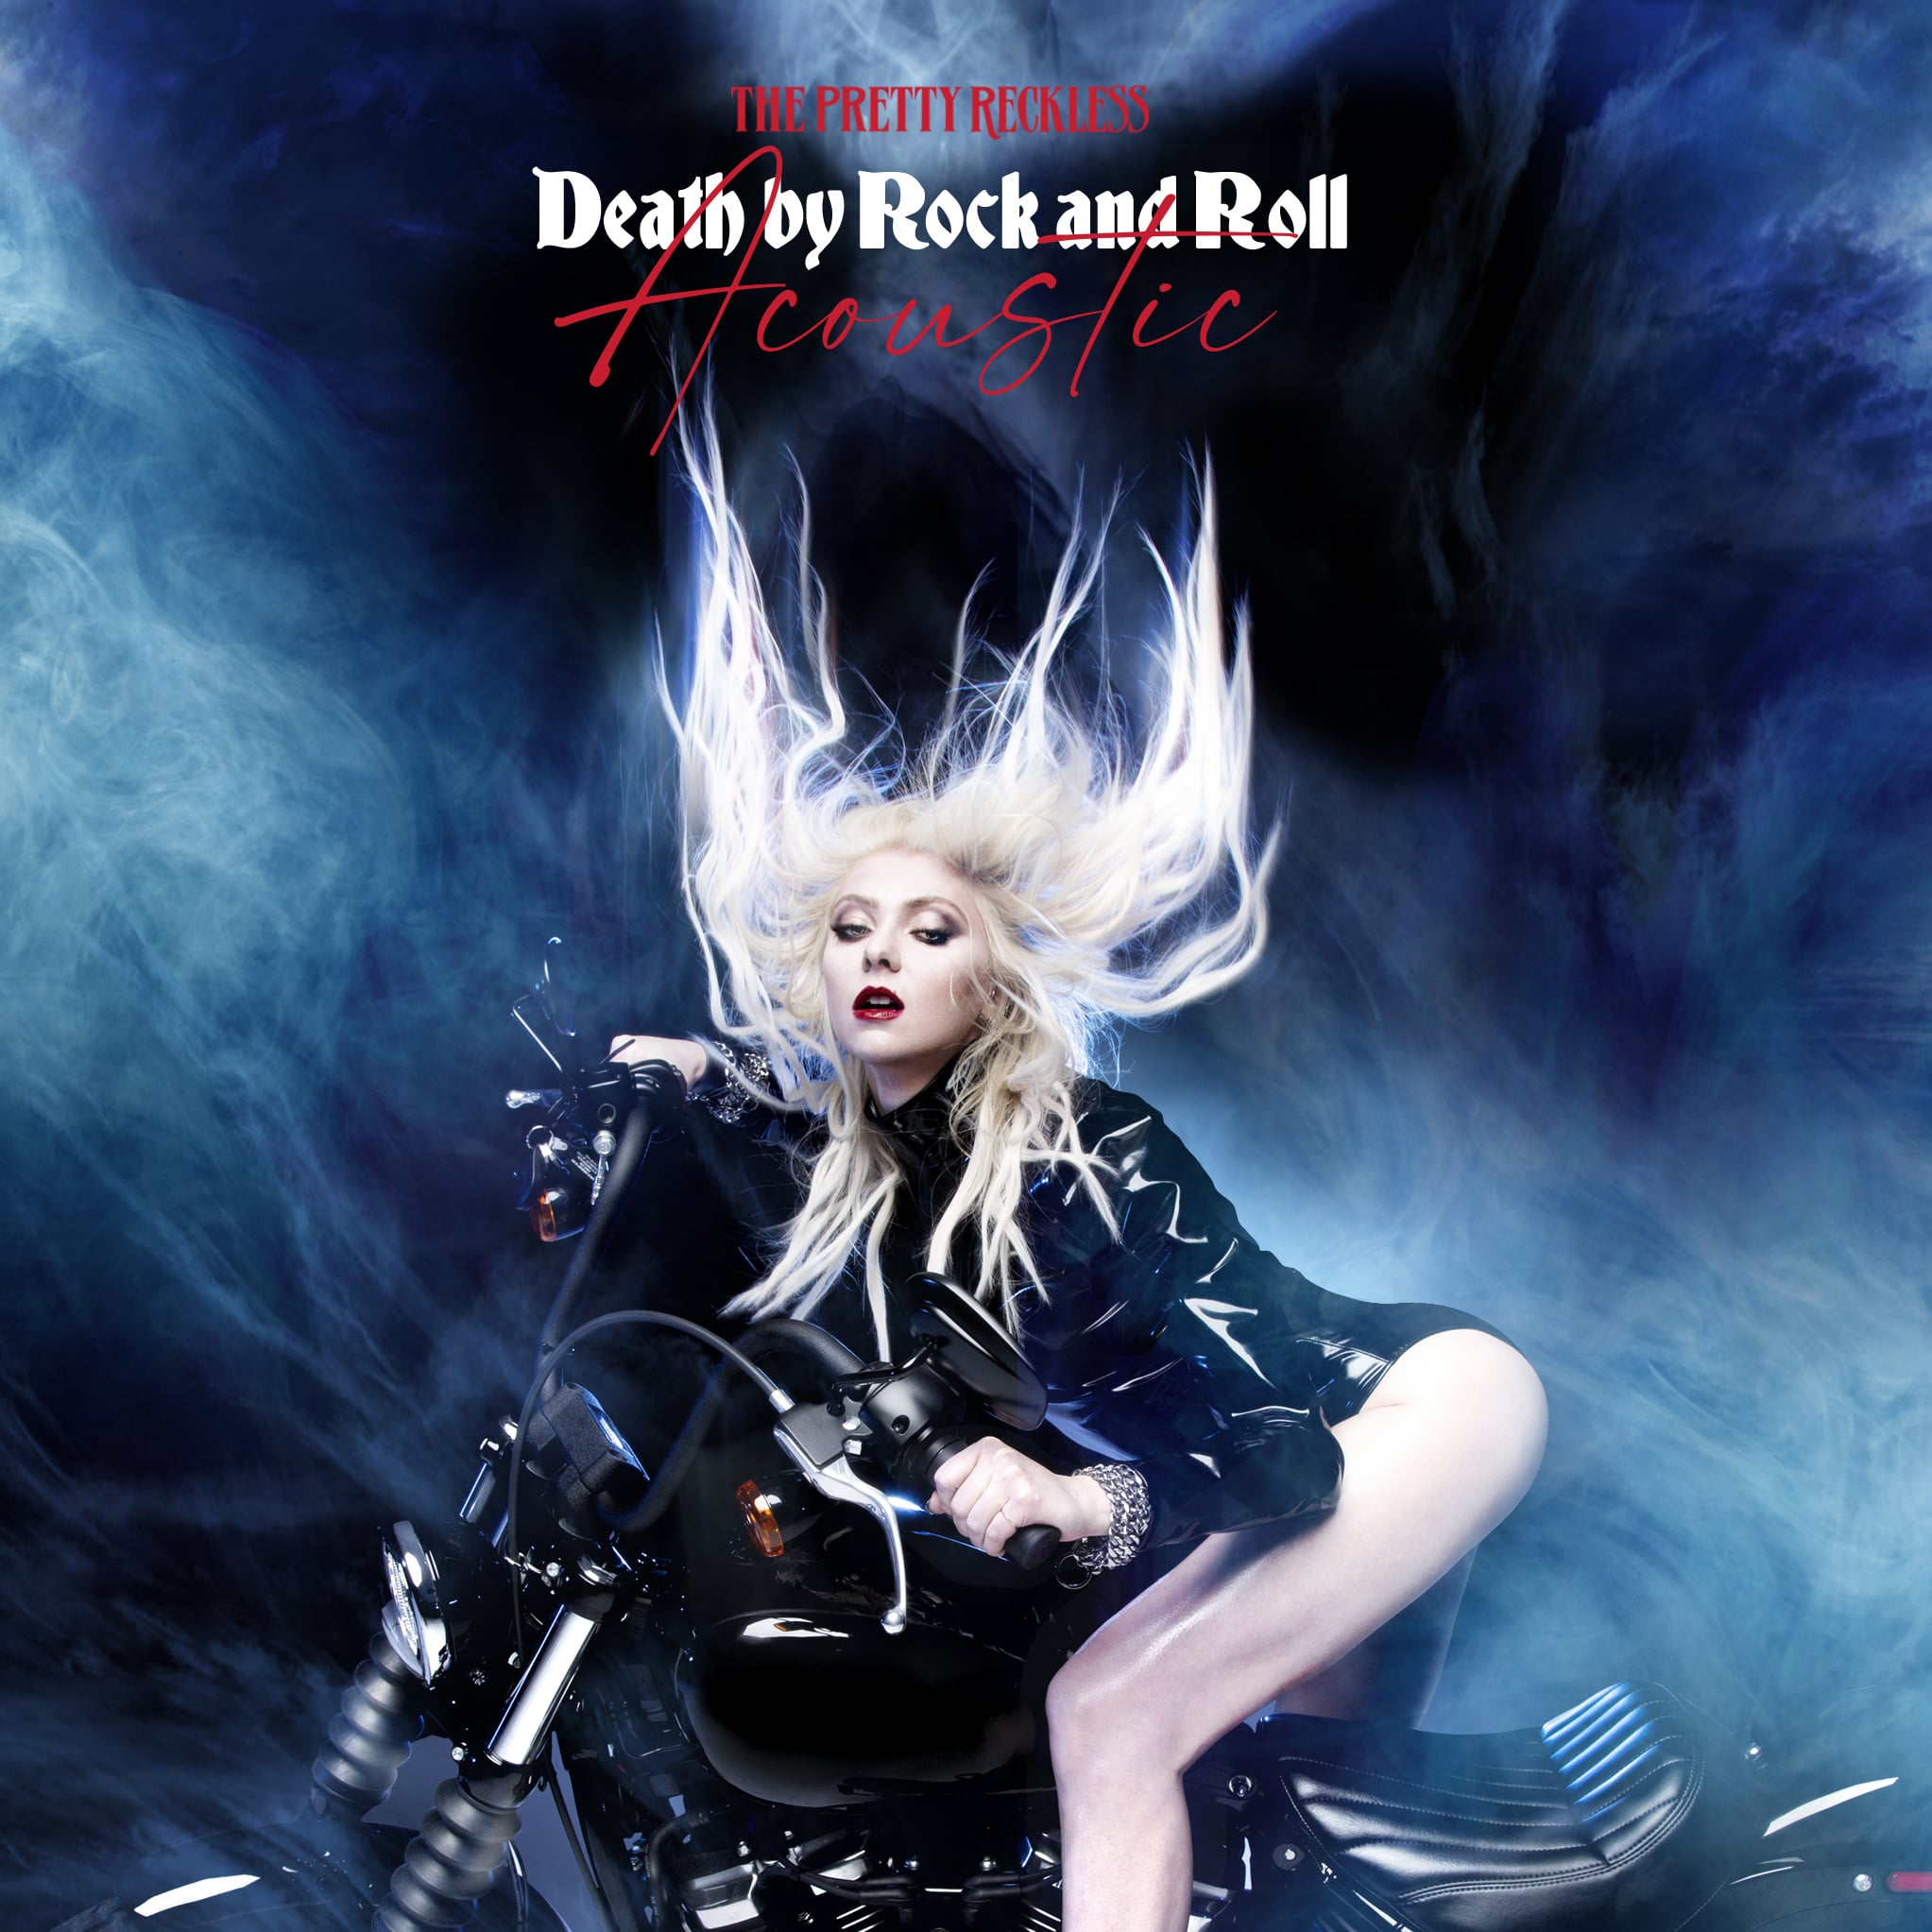 Death By Rock And Roll (Acoustic) Image